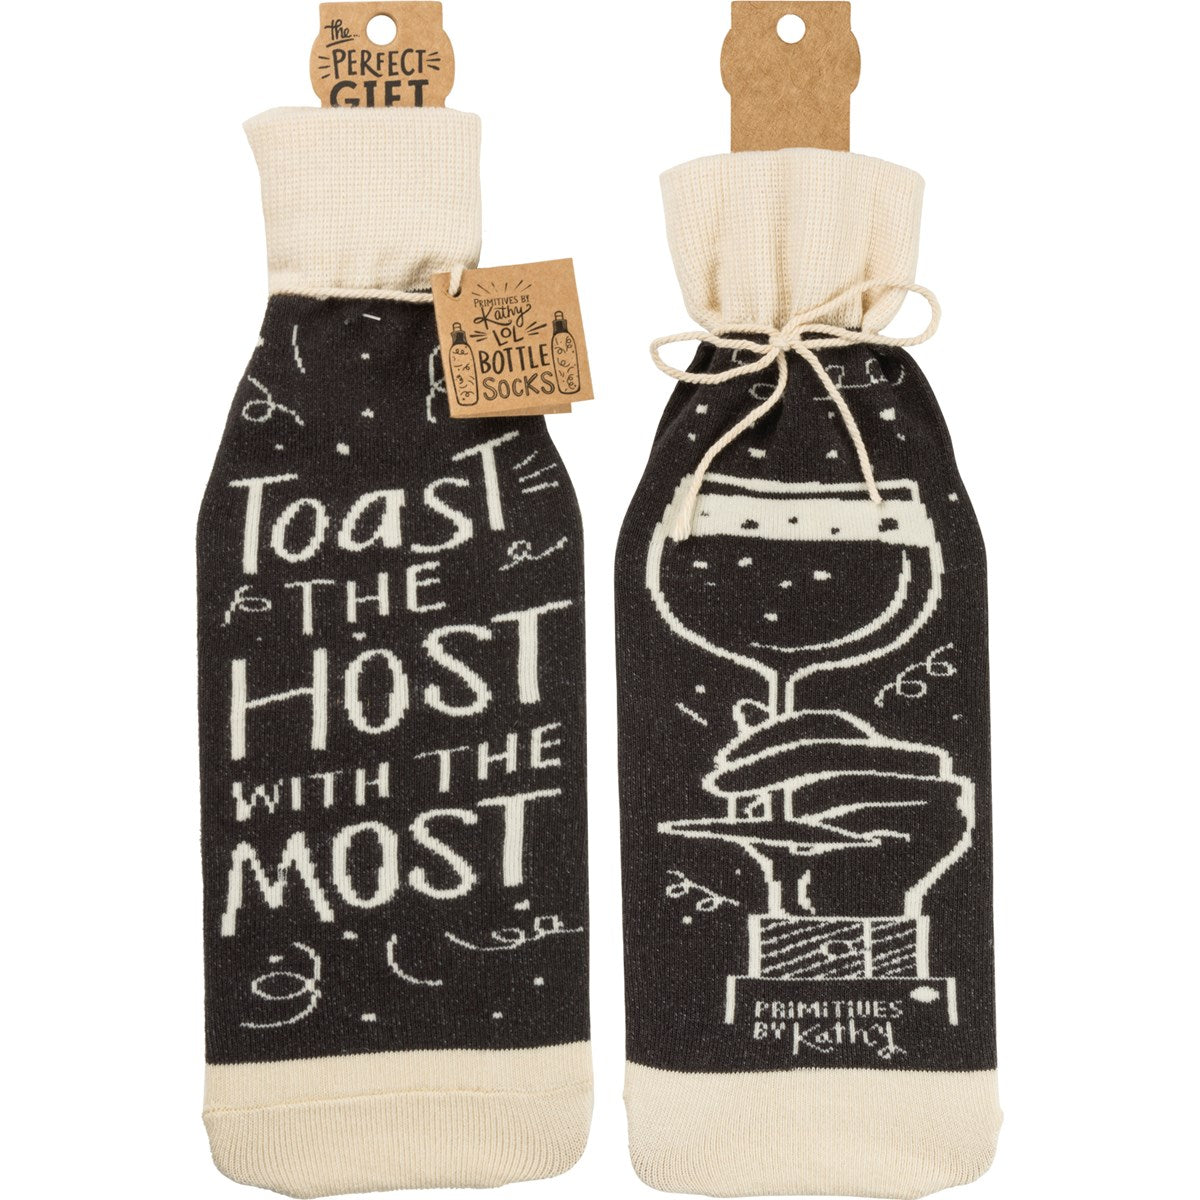 Bottle Sock -Toast The Host With The Most